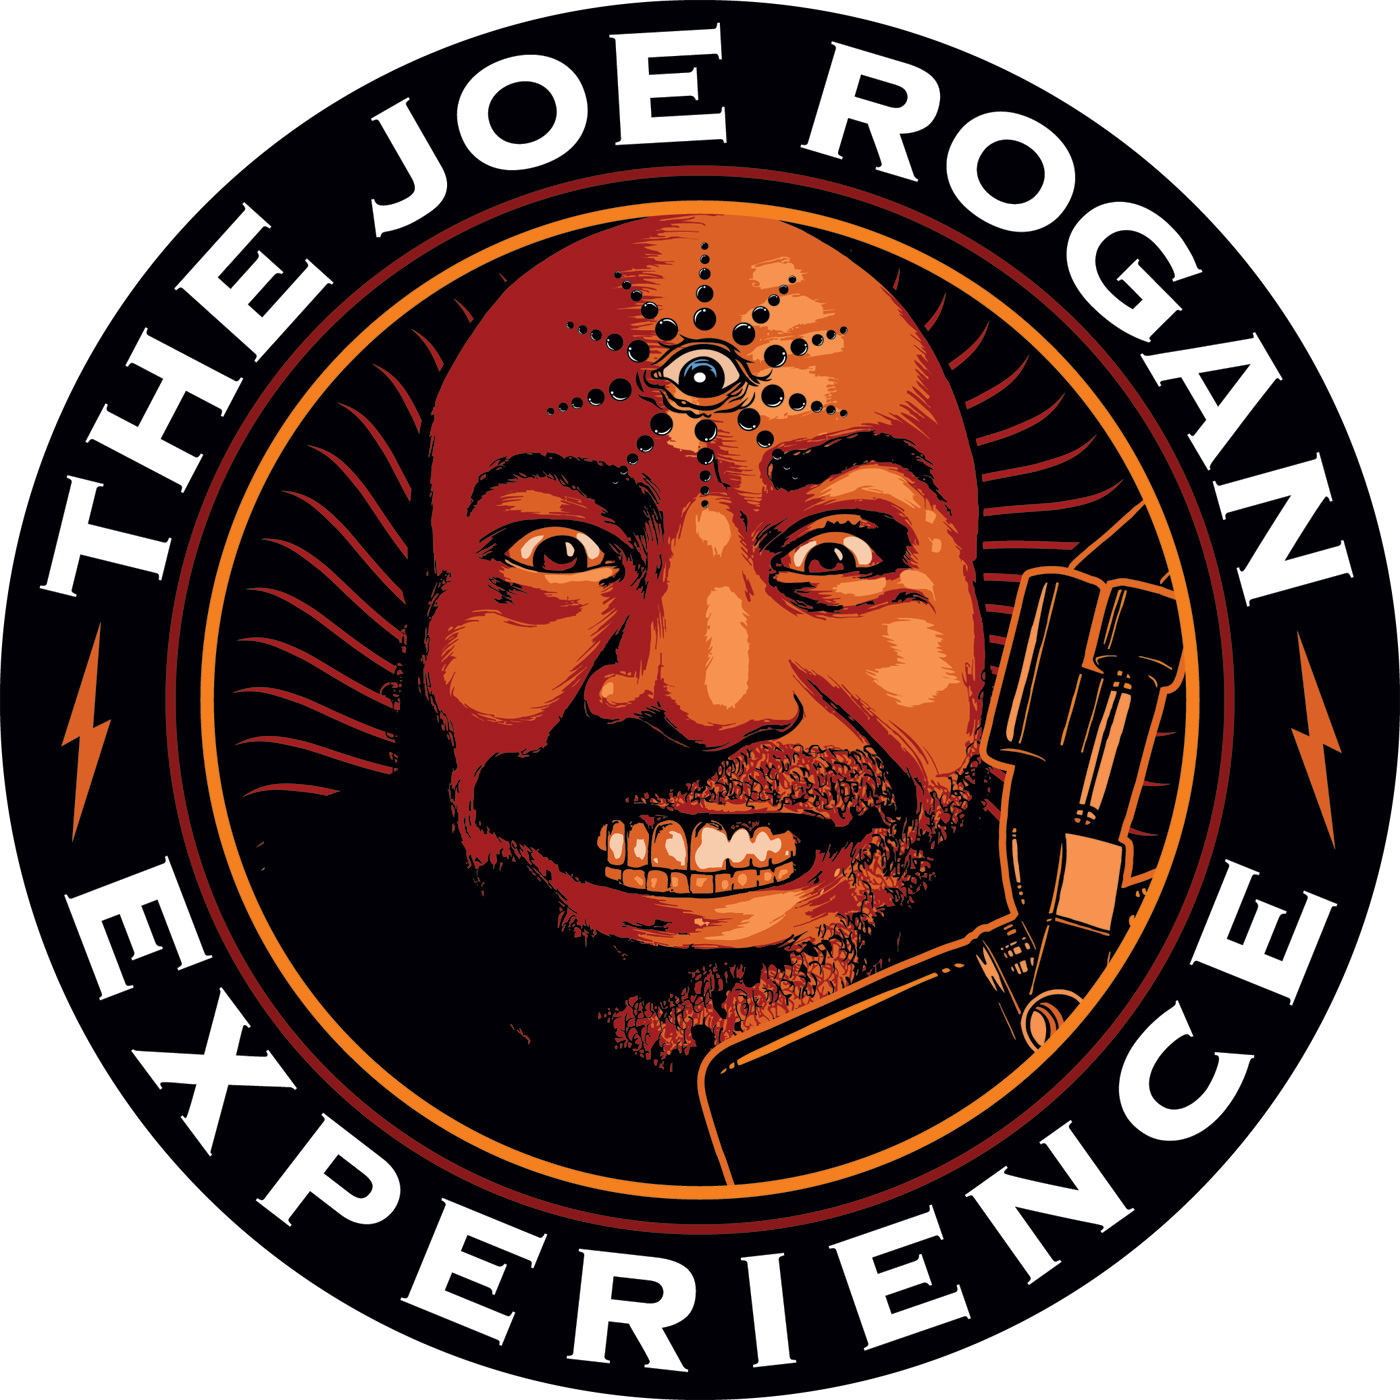 The Joe Rogan Experience PODCAST #141 - Duncan Trussell